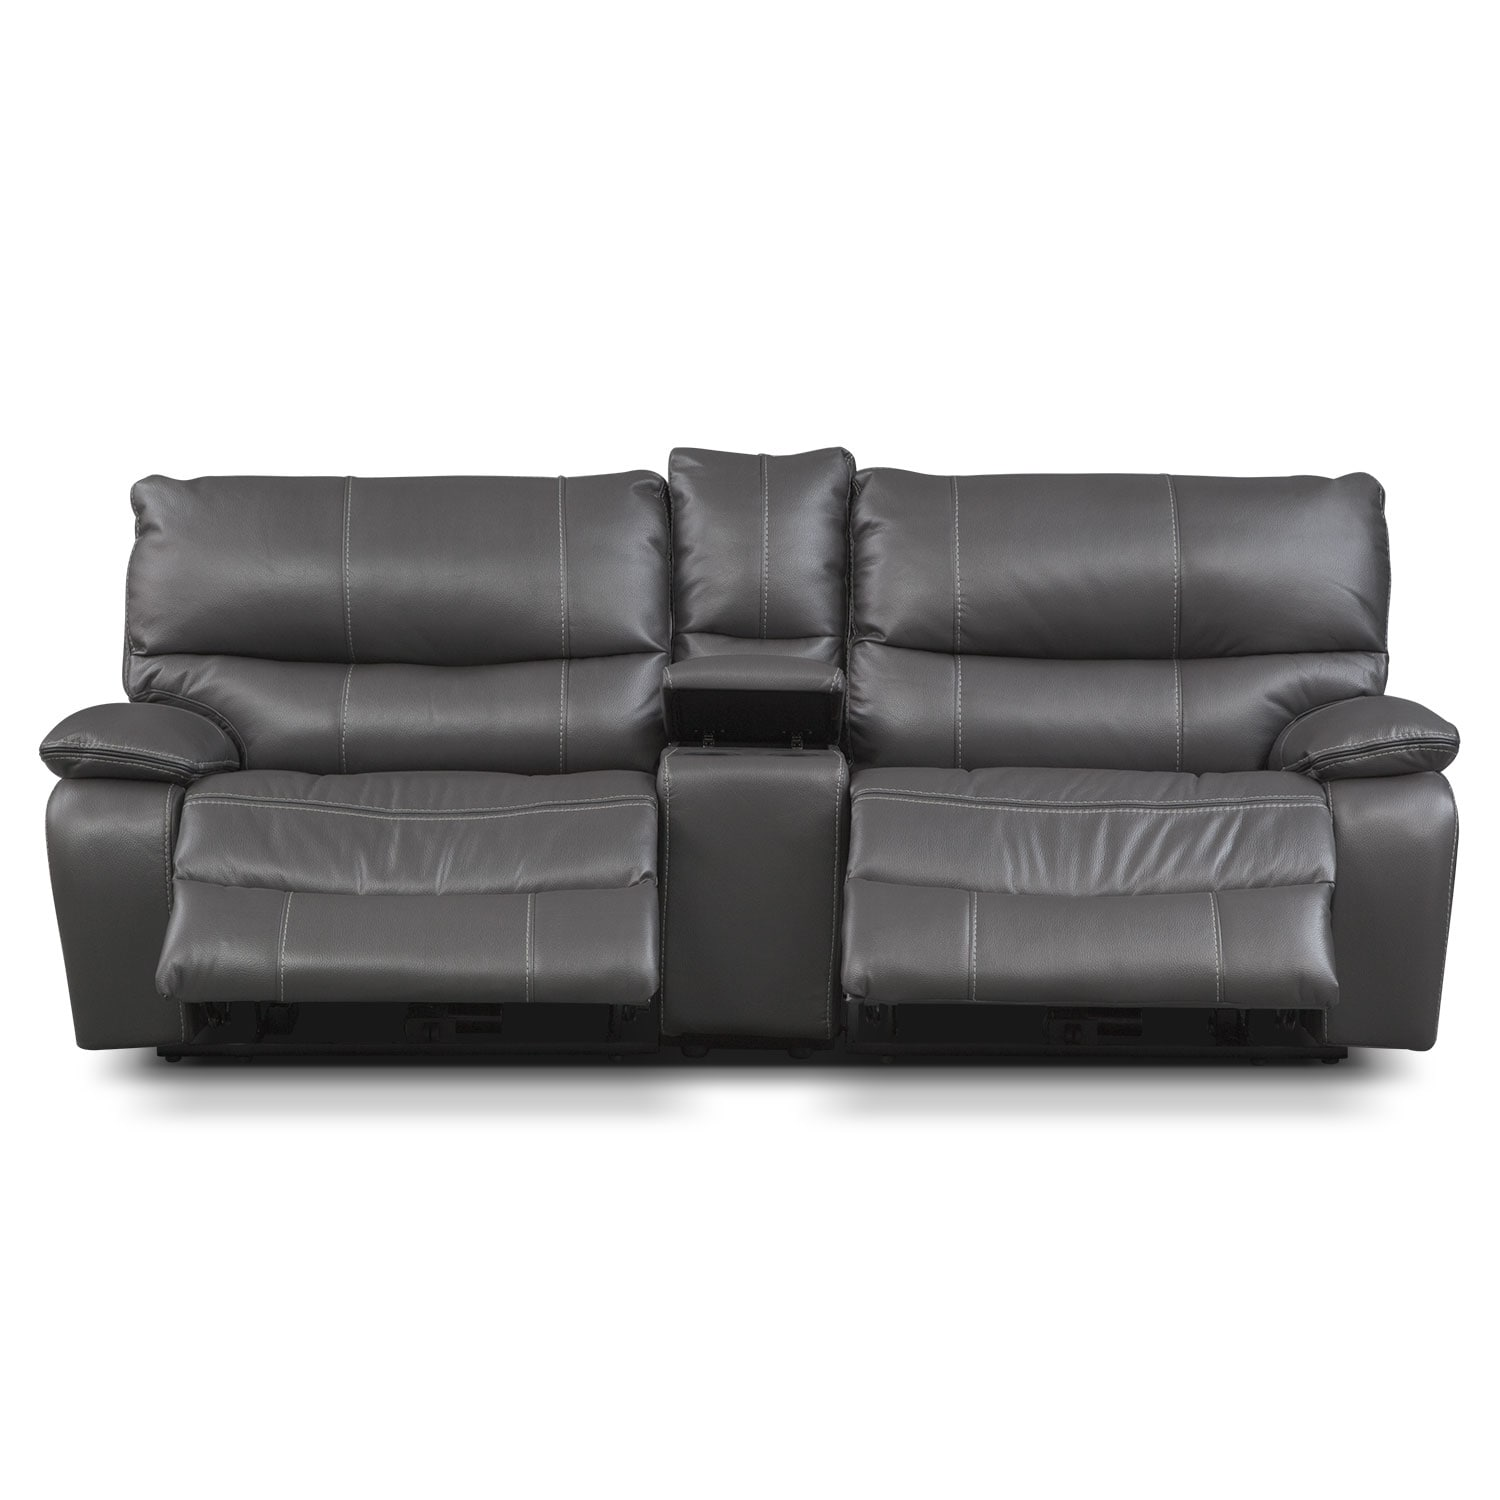 orlando power reclining sofa with console gray american rh americansignaturefurniture com reclining sofa with console recliner sofa with center console